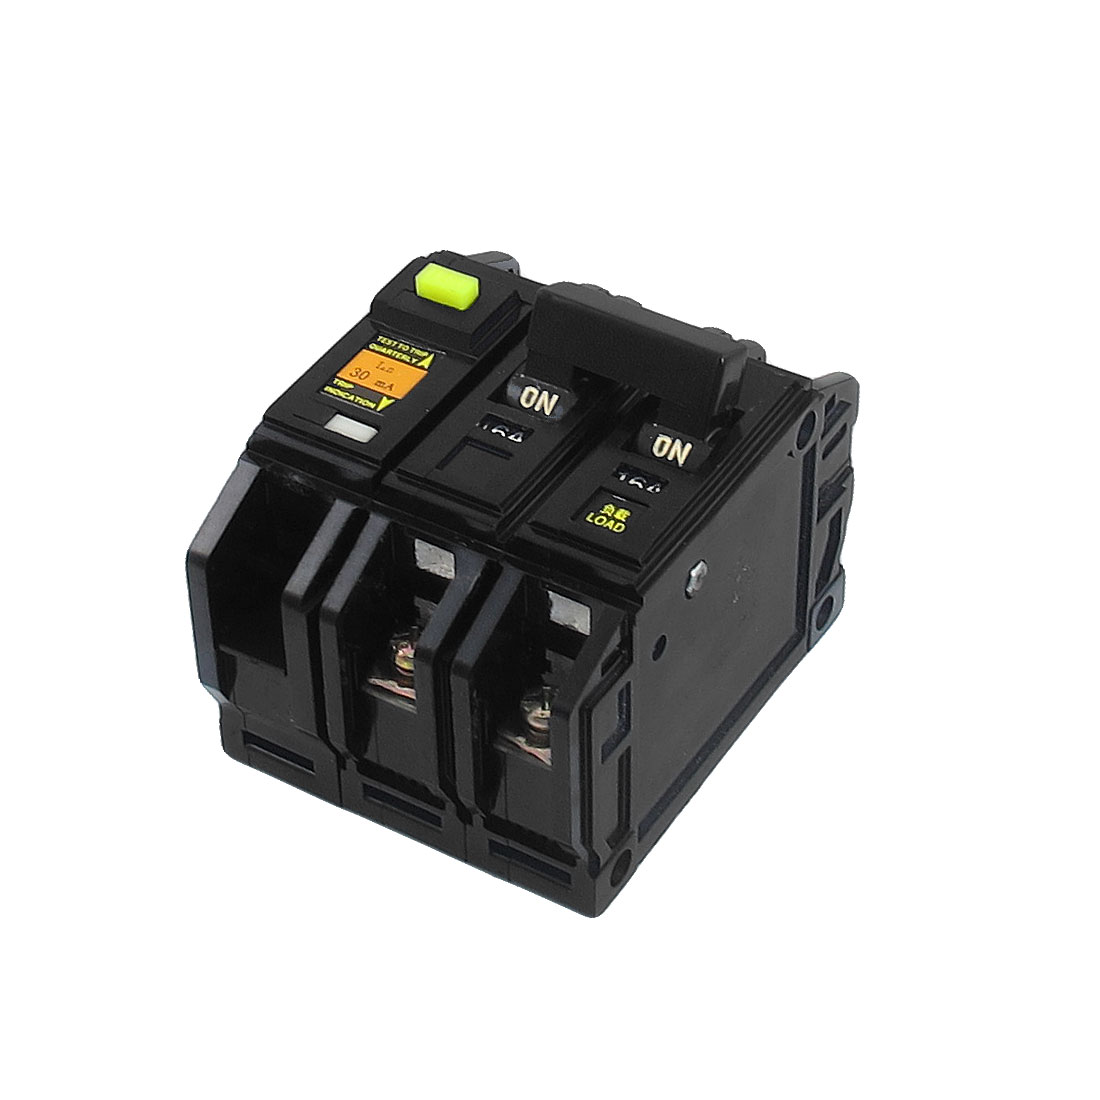 DZ12LE AC 220V/380V 16A 2P ELCB Earth Leakage Circuit Breaker